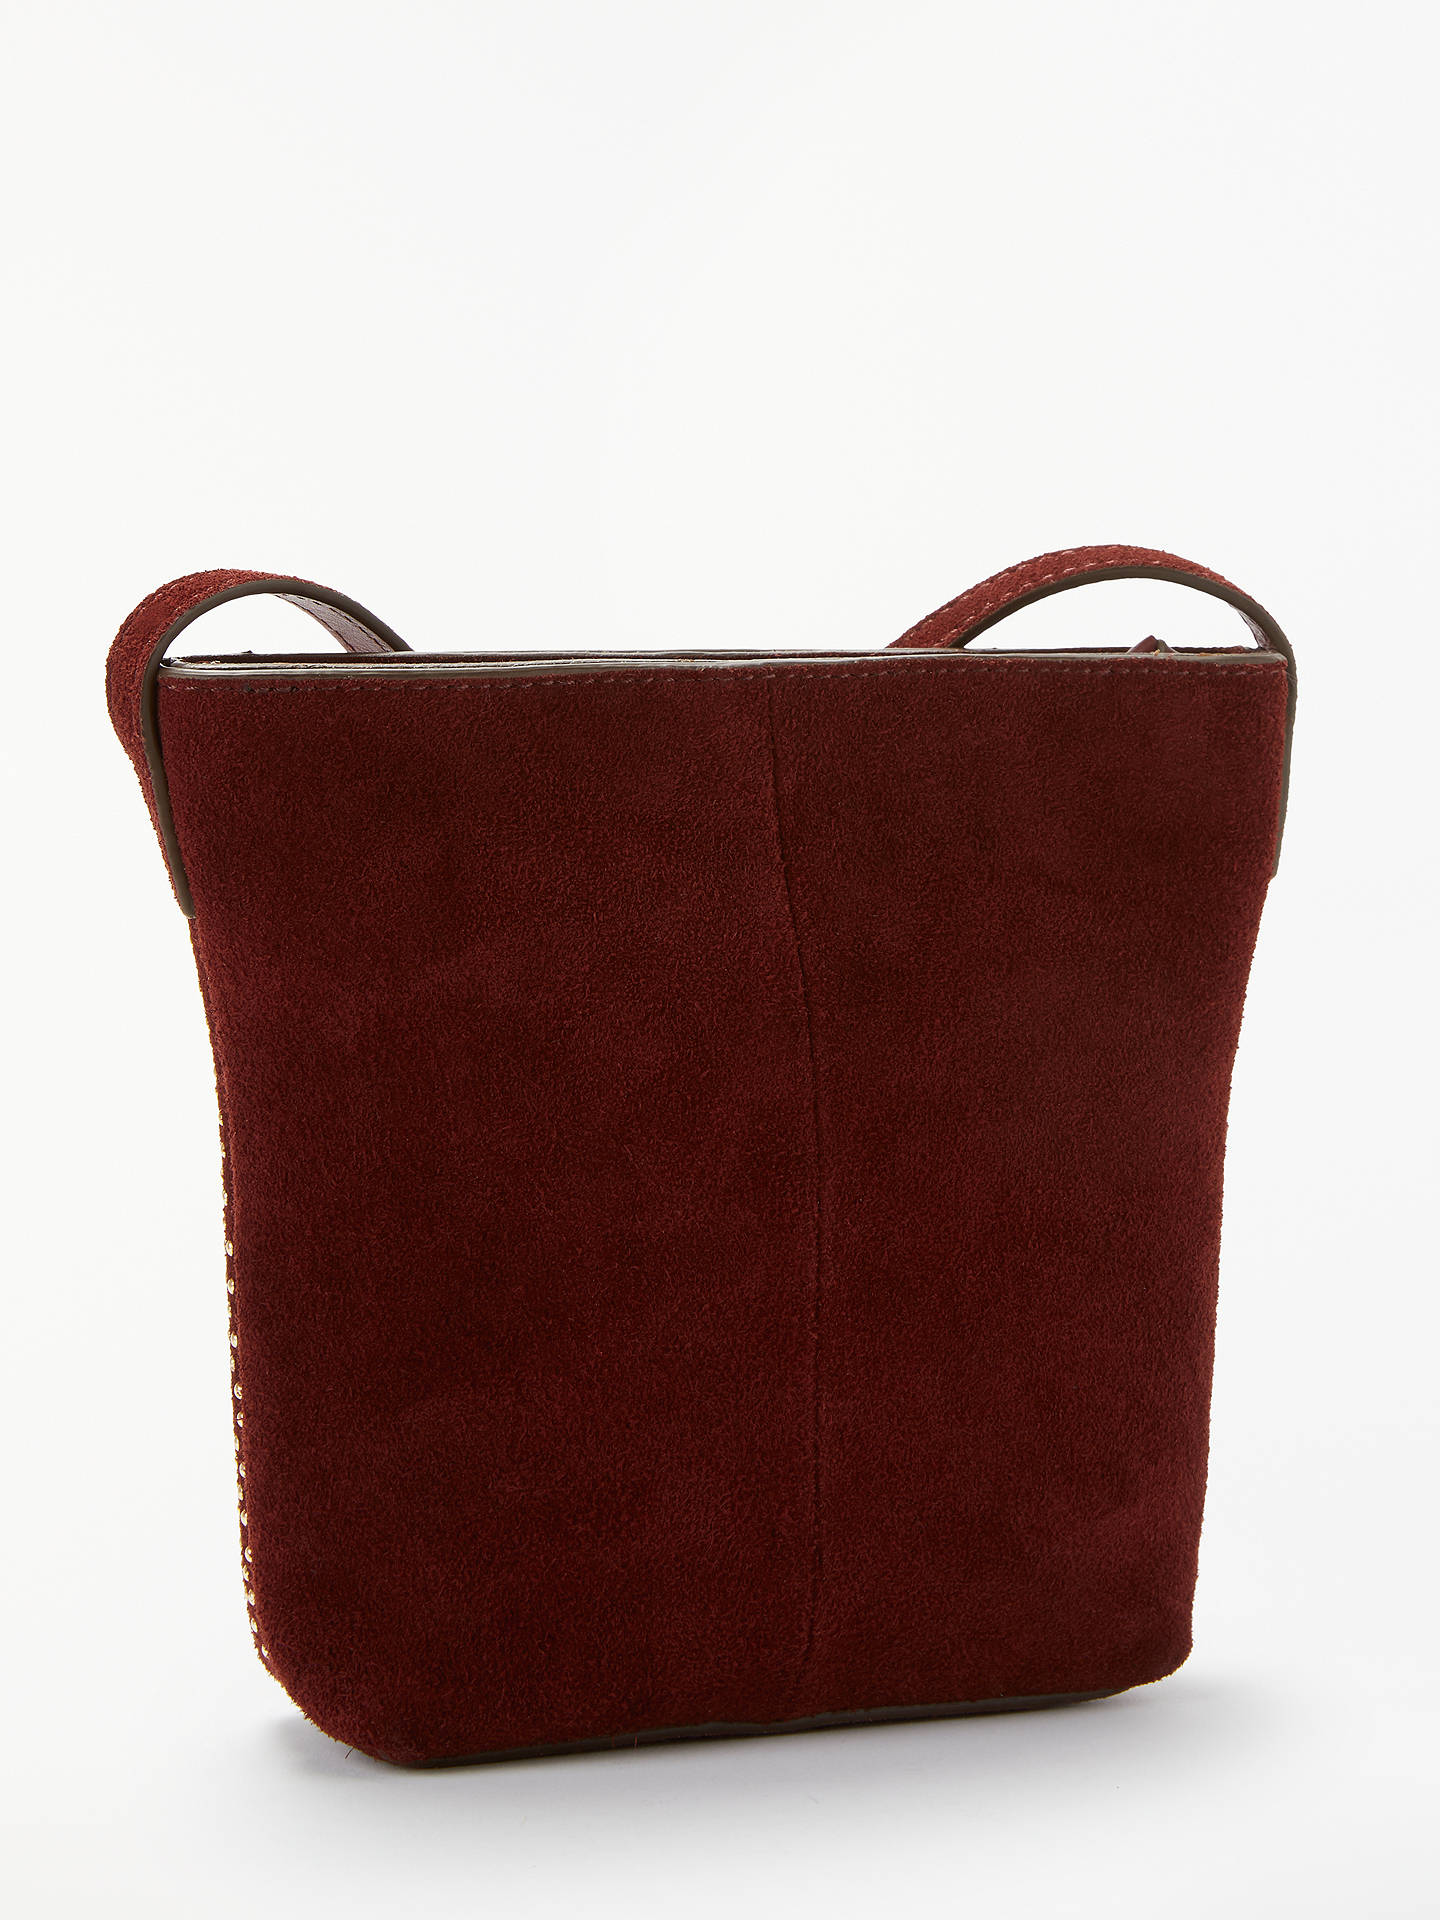 BuyAND/OR Mara Leather Bucket Bag, Red Online at johnlewis.com